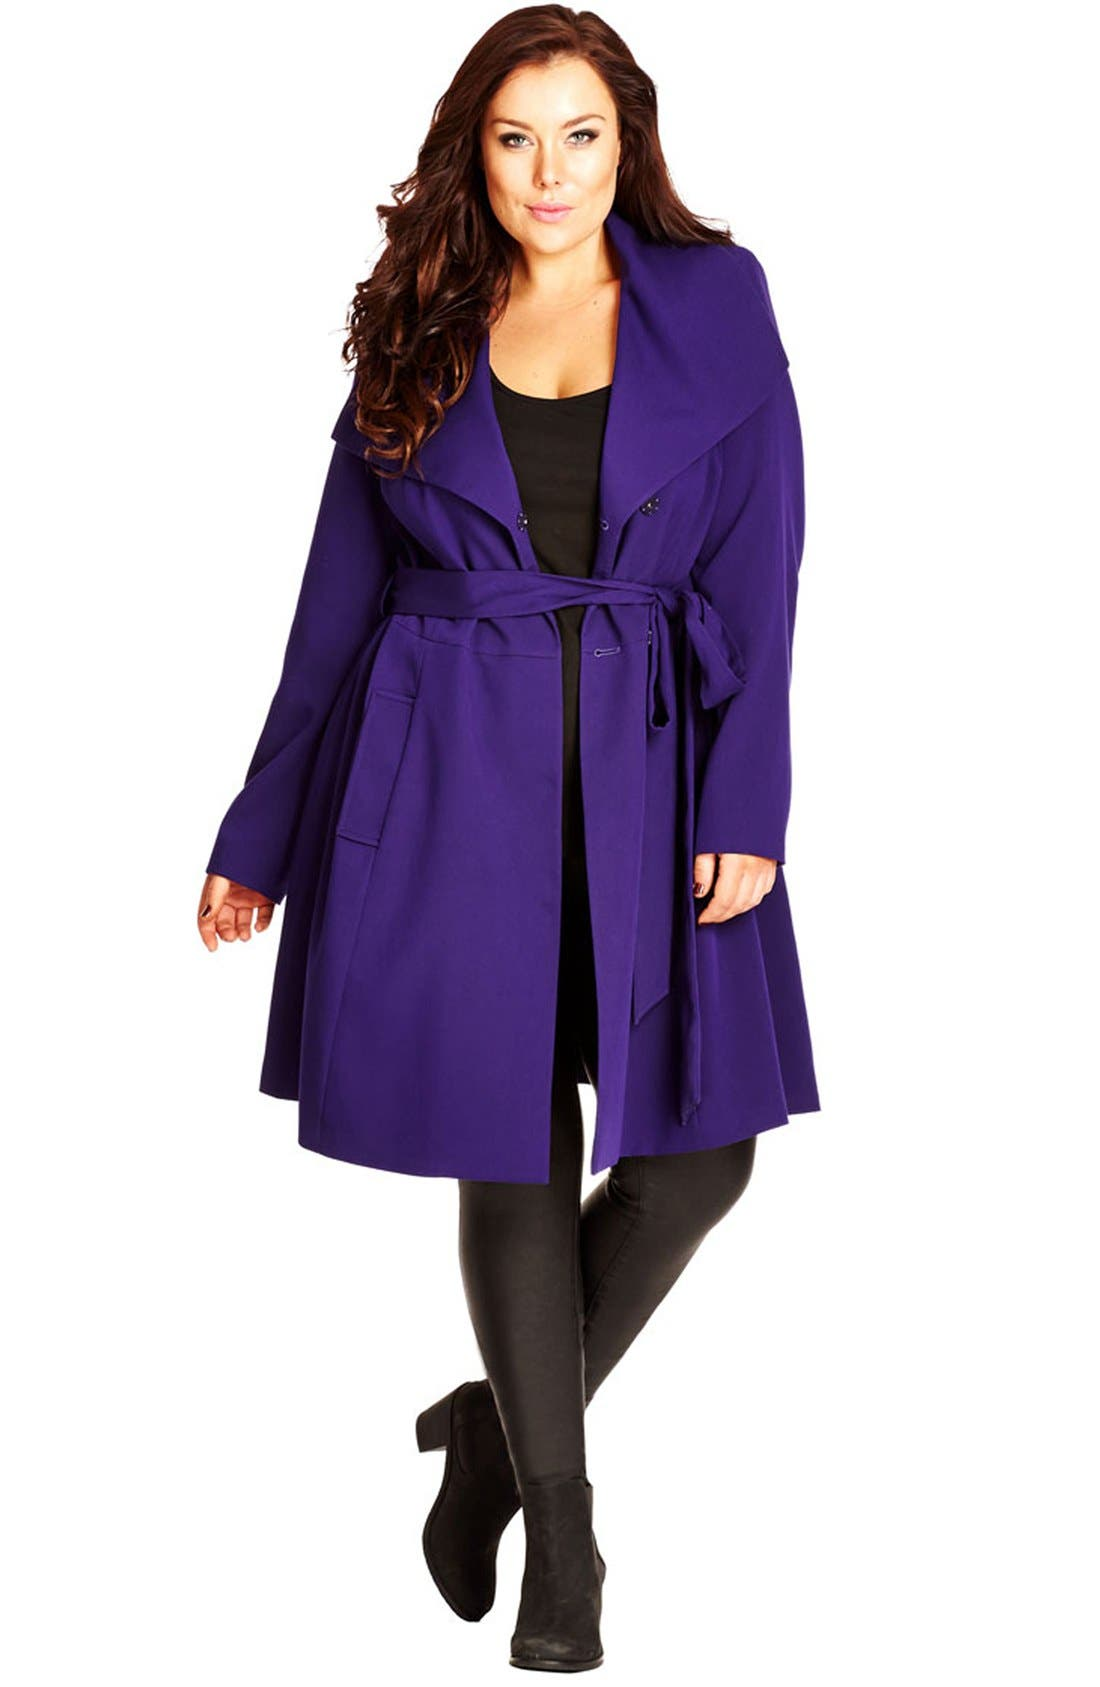 Main Image - City Chic 'So Chic' Colored Trench Coat (Plus Size)